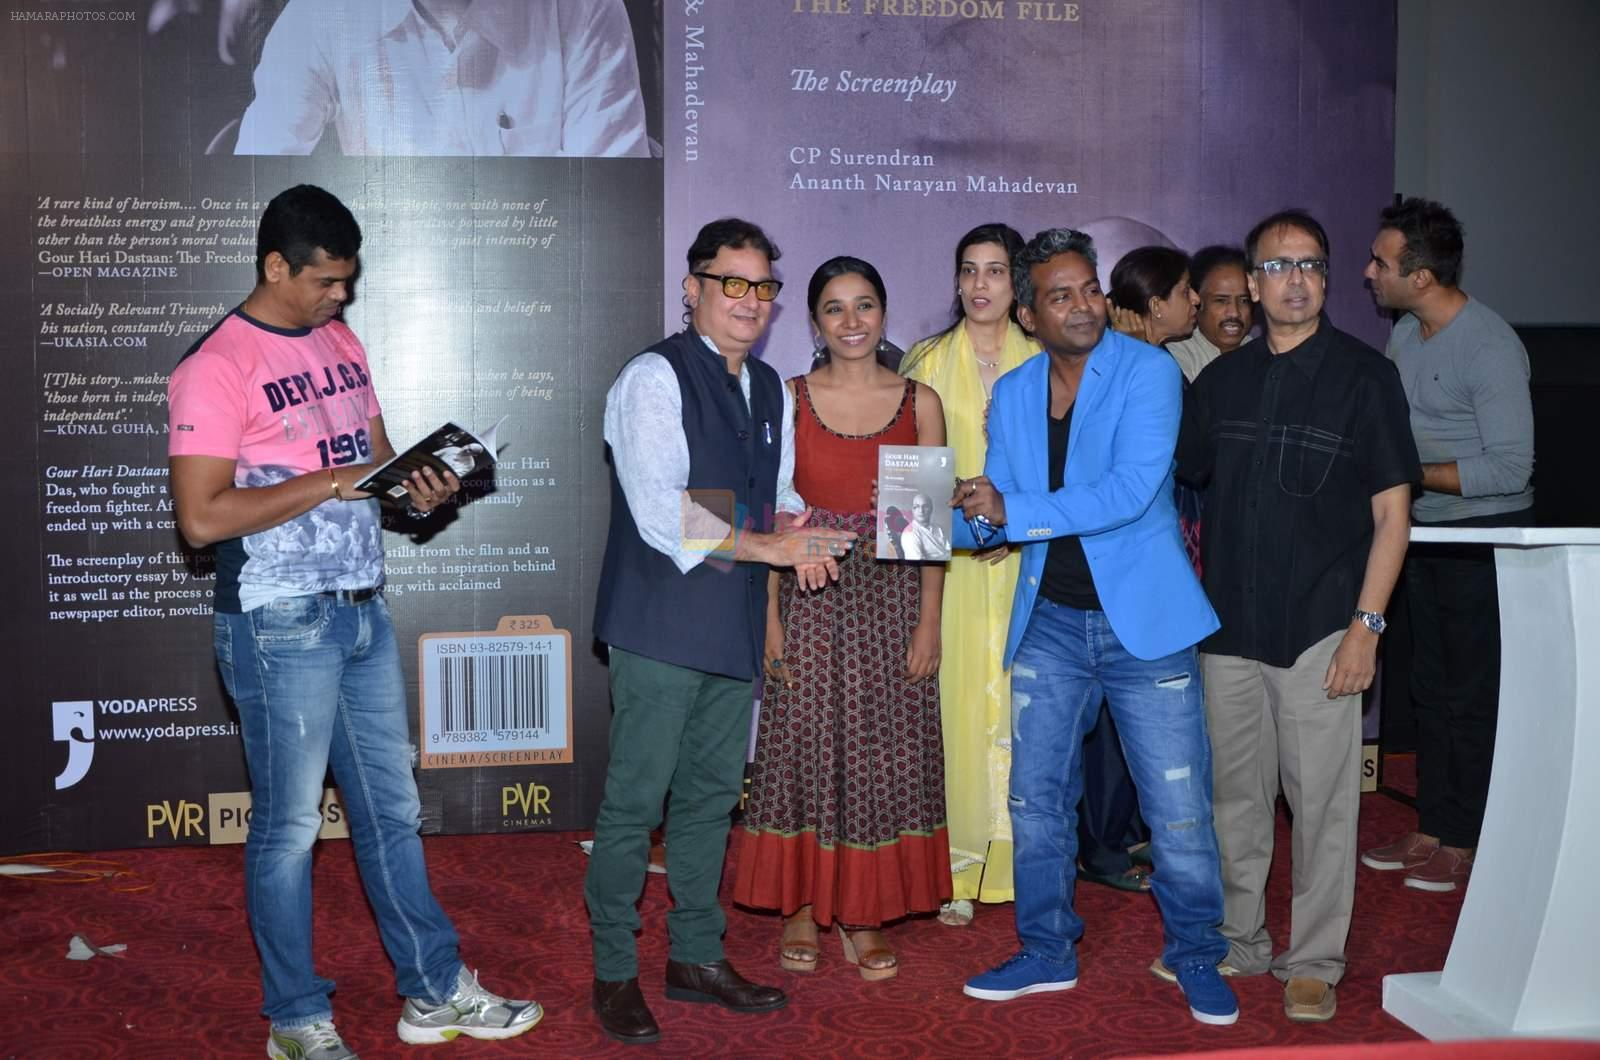 Tannishtha Chatterjee,Siddharth Jadhav, Vinay Pathak, Anant Mahadevan at Gour Hari Dastaan book launch in Mumbai  on 10th Aug 2015